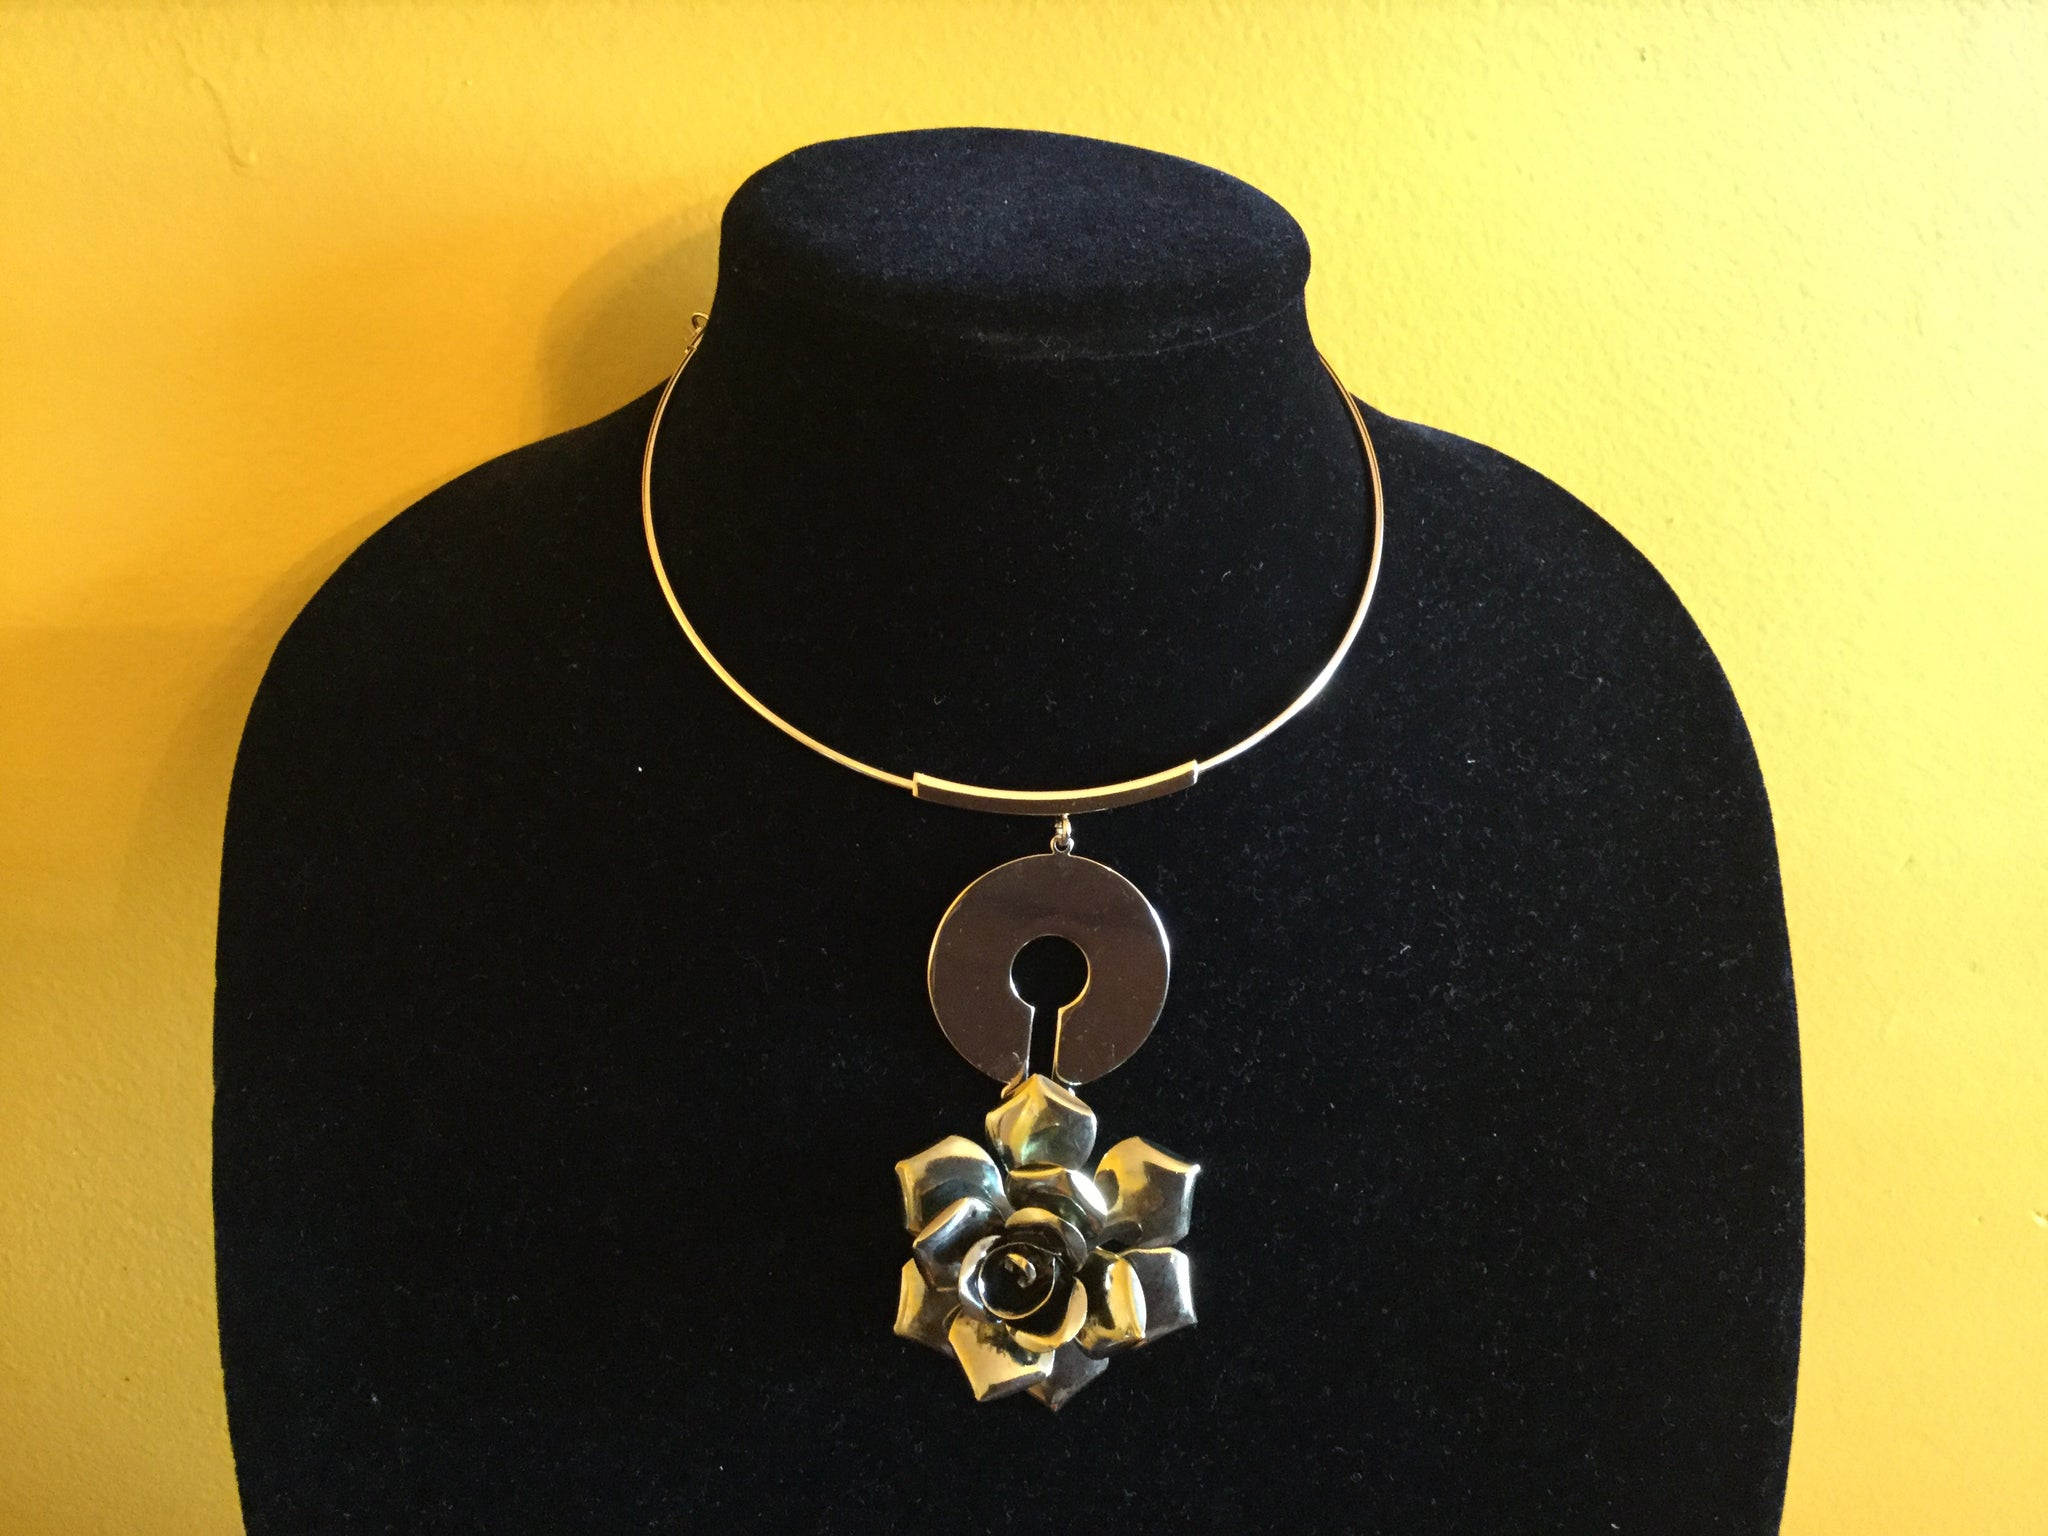 Blossom Rose Necklace